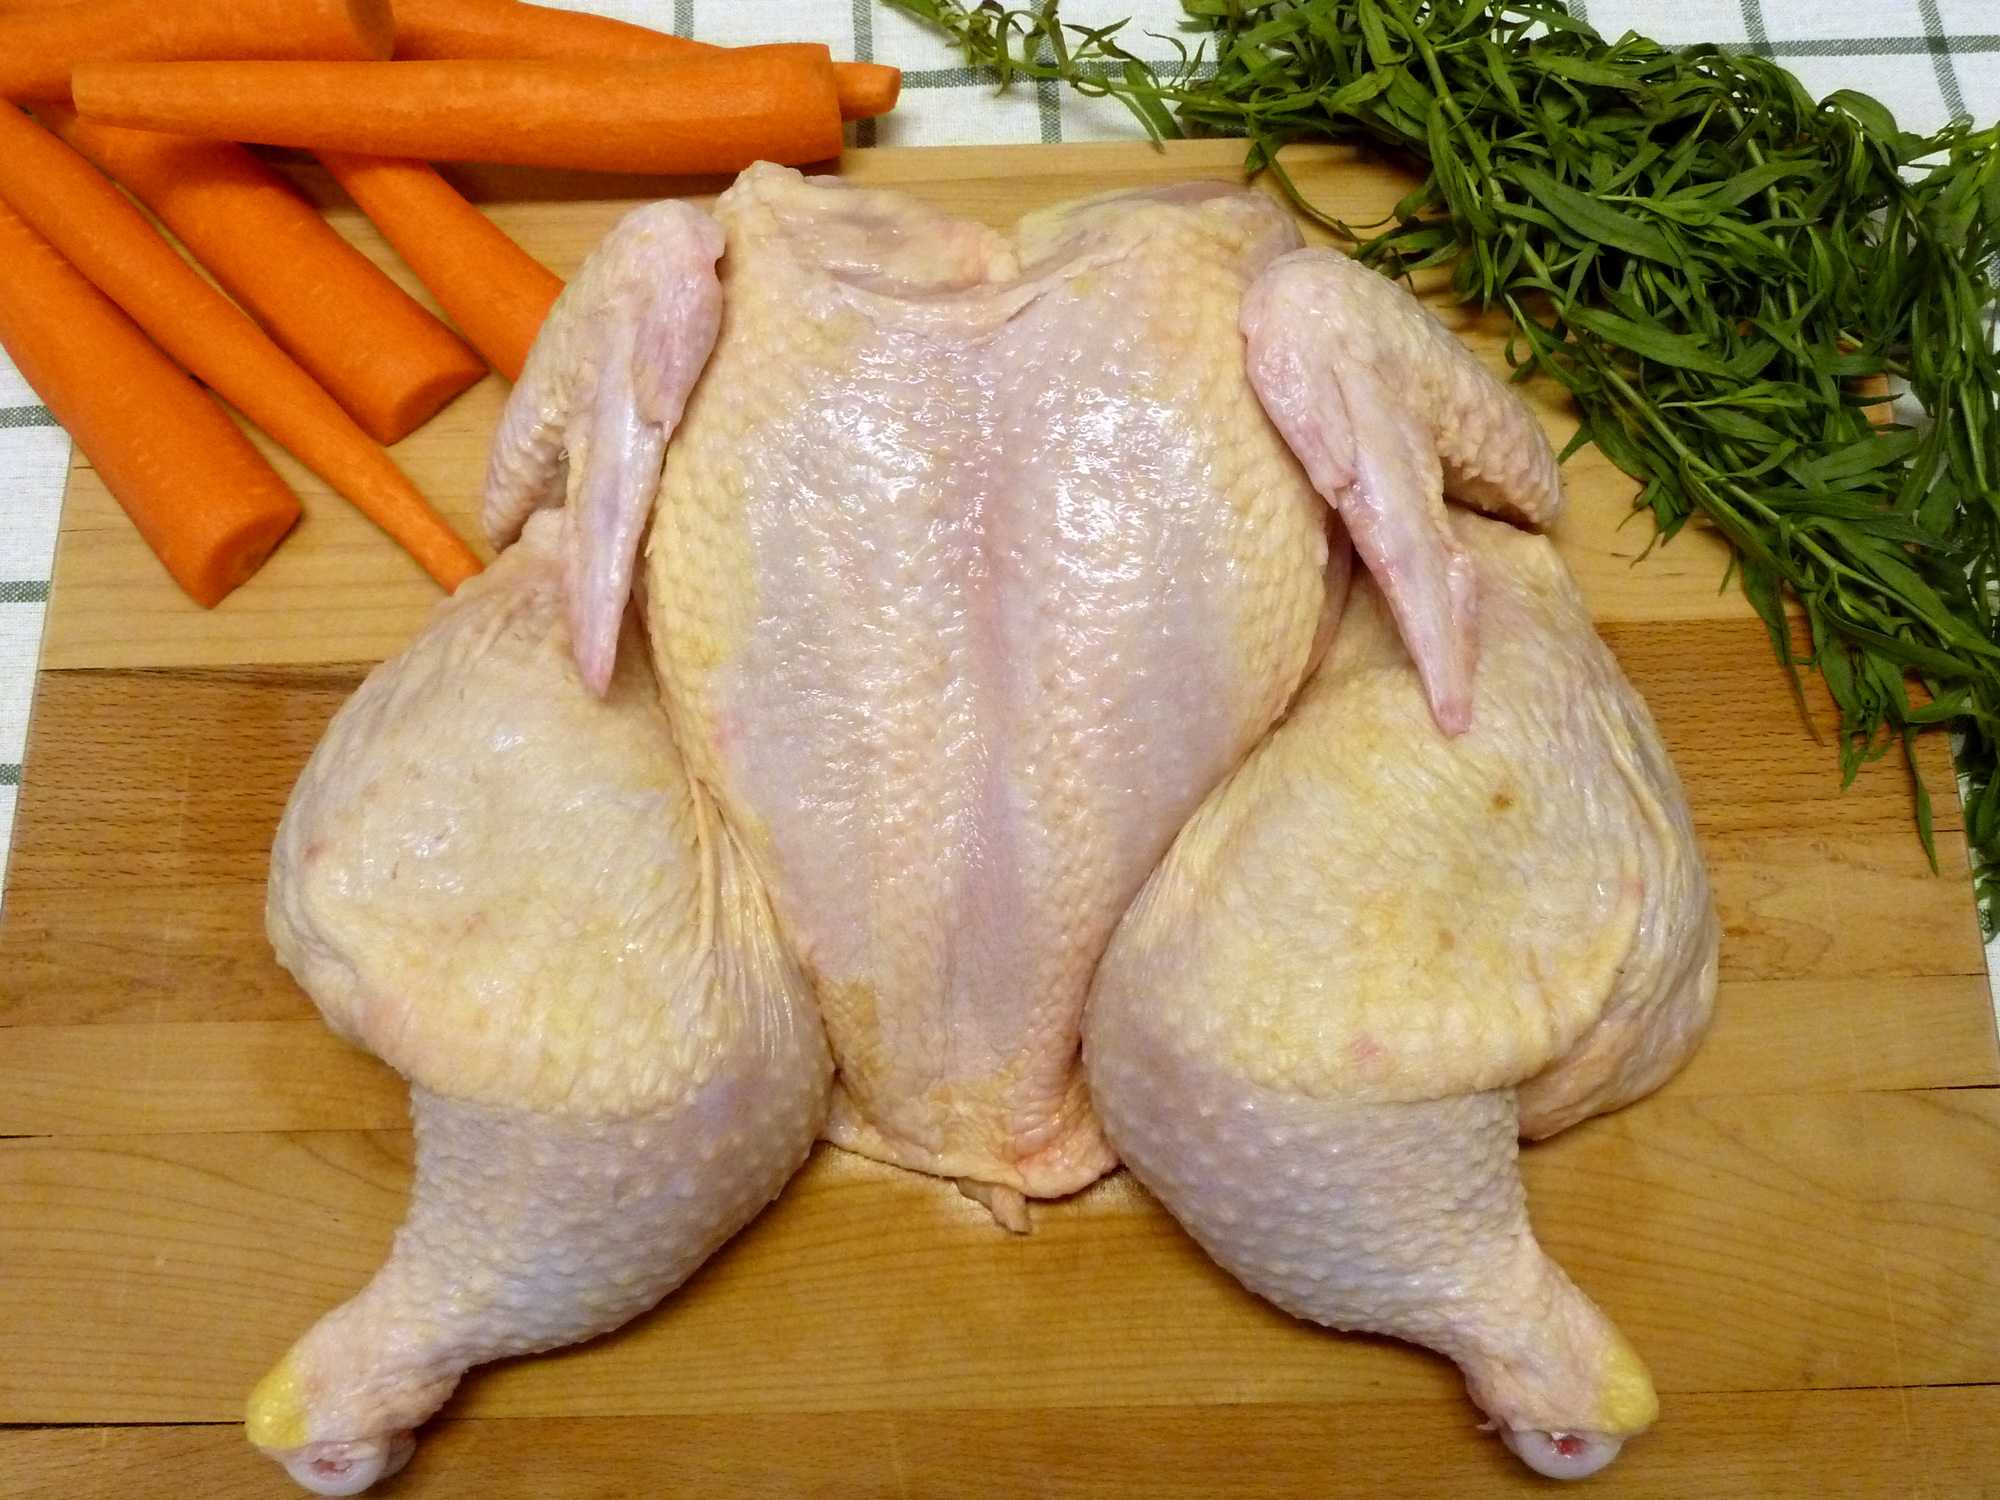 Turn the chicken over and open it up to lie flat. The feet will be pointing outward.